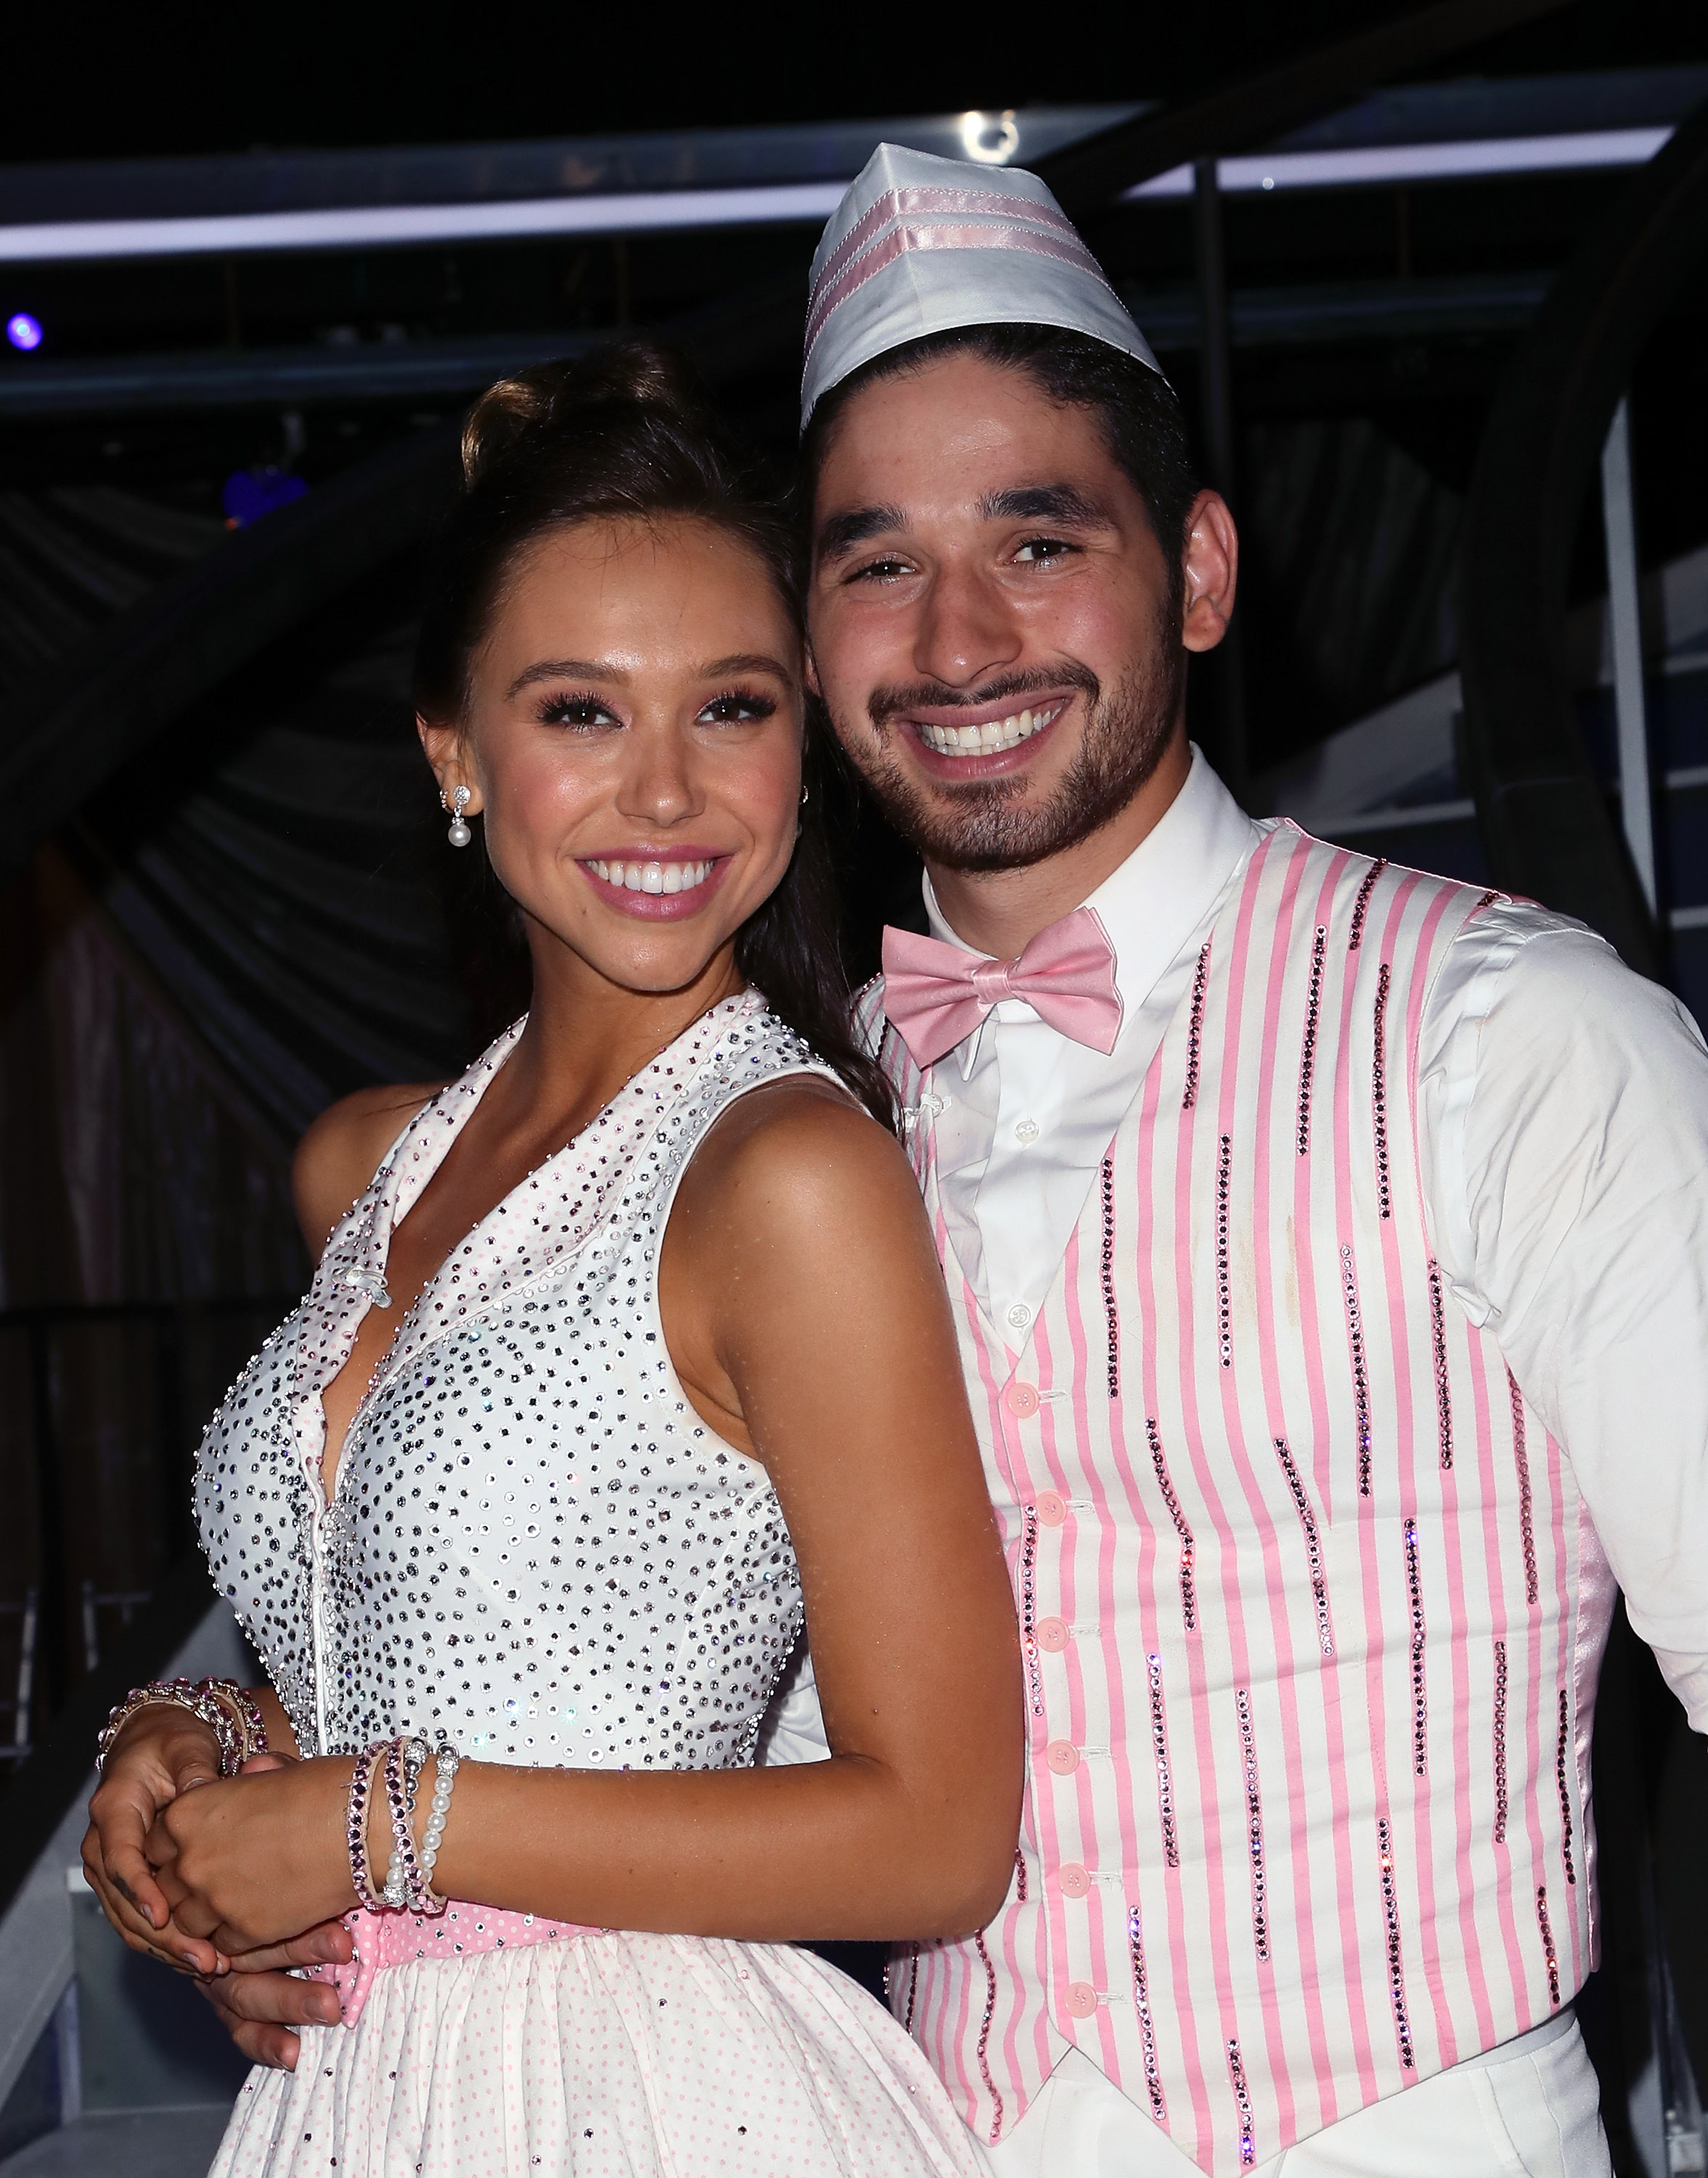 Alexis Ren (L) and Alan Bersten pose at 'Dancing with the Stars' Season 27 at CBS Television City on September 24, 2018 in Los Angeles, California.